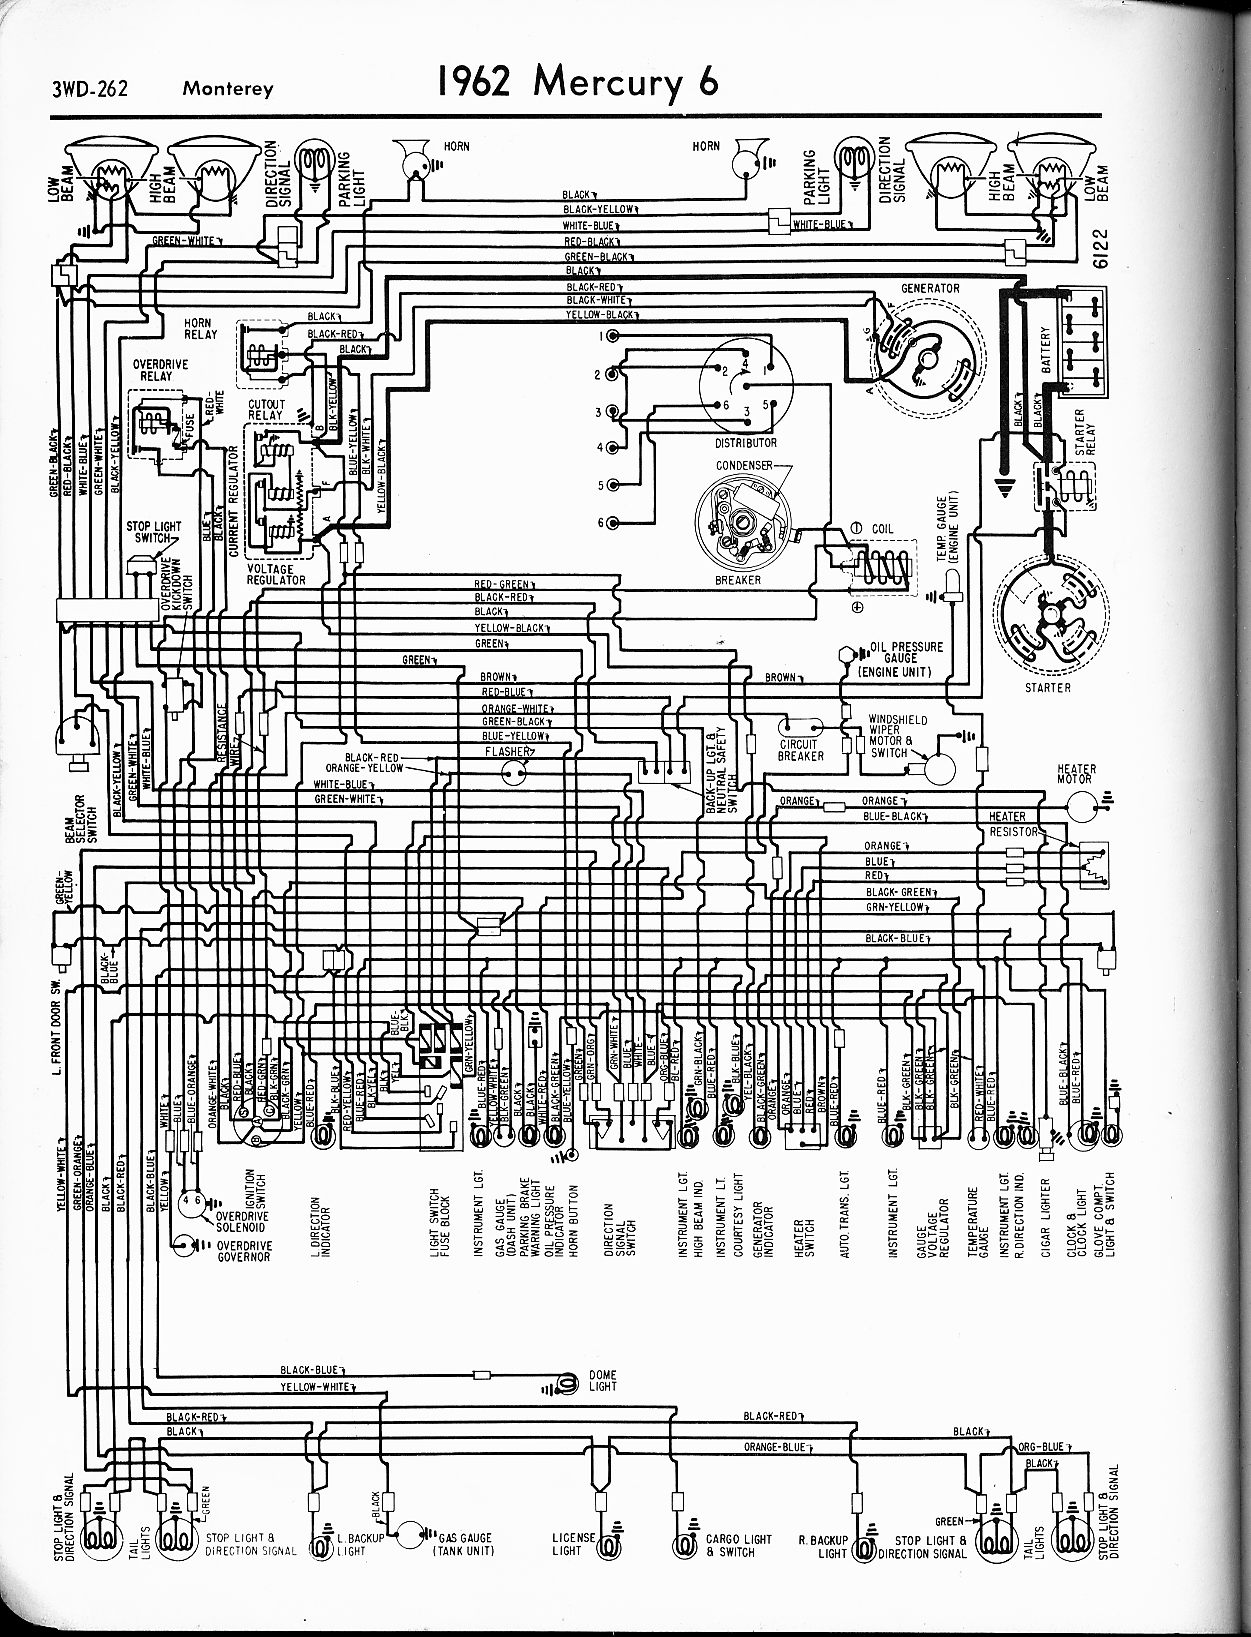 1966 mercury wiring diagram 11 14 vdinkelbach de \u2022 1982 Ford F150 Wiring Diagram mercury wiring diagrams the old car manual project rh oldcarmanualproject com 1966 mercury comet wiring diagram mercury 60 hp wiring diagram